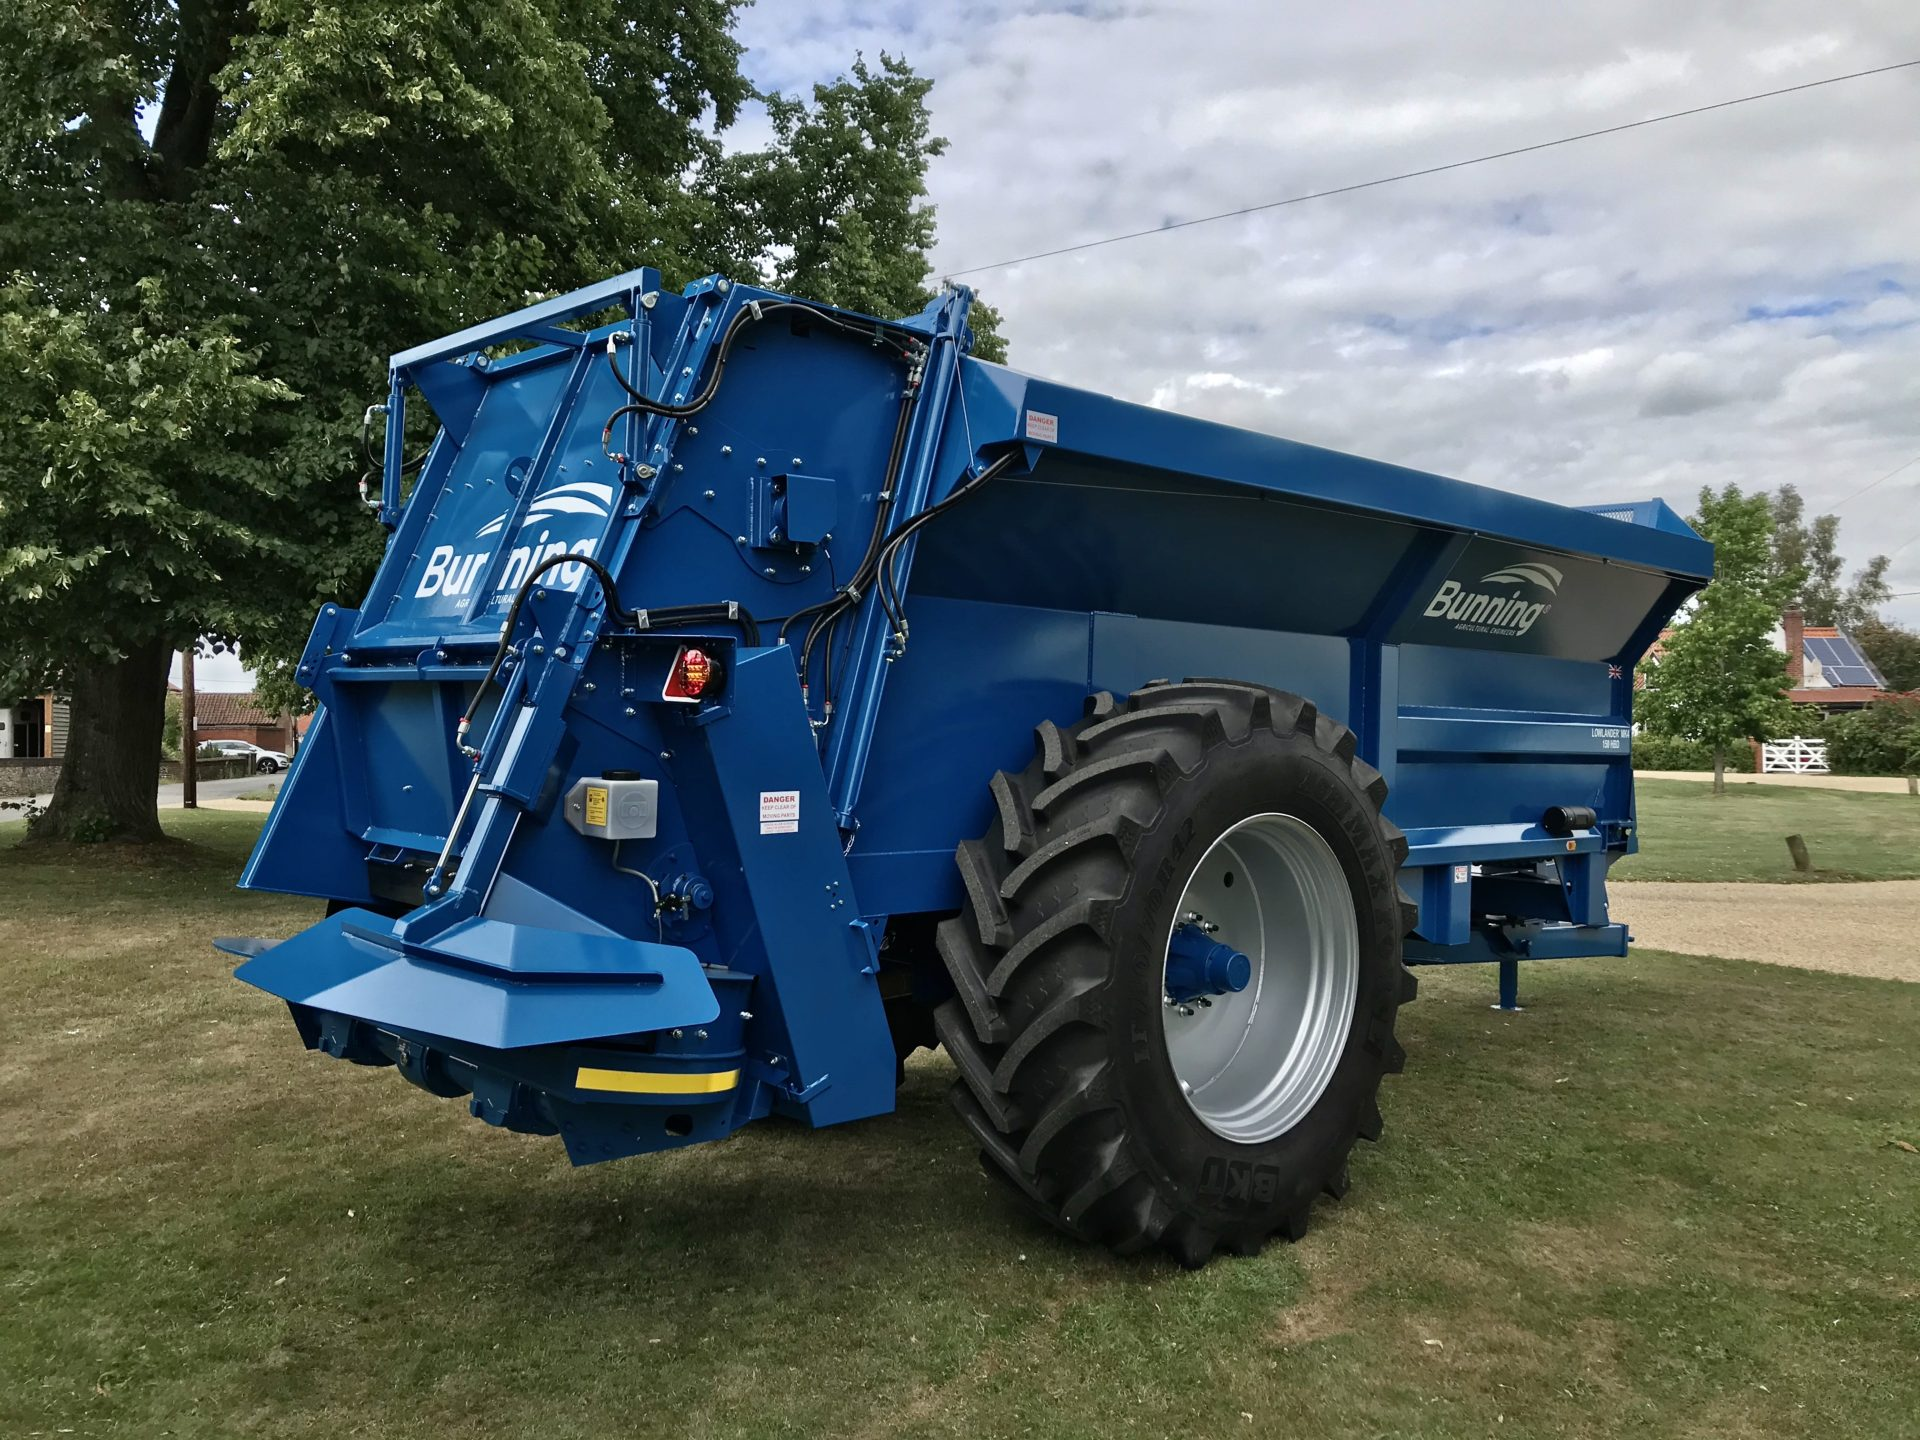 Lowlander 150 HBD Mk4 with Slurry door, slurry door indicator, built in flared extensions, hydraulic opening canopy, hydraulic boarder deflector, ISOBUS weigh system, overload beacon, sprung drawbar, air brakes, rear flashing beacons, steel PTO guard and 710/70 R42 wheels